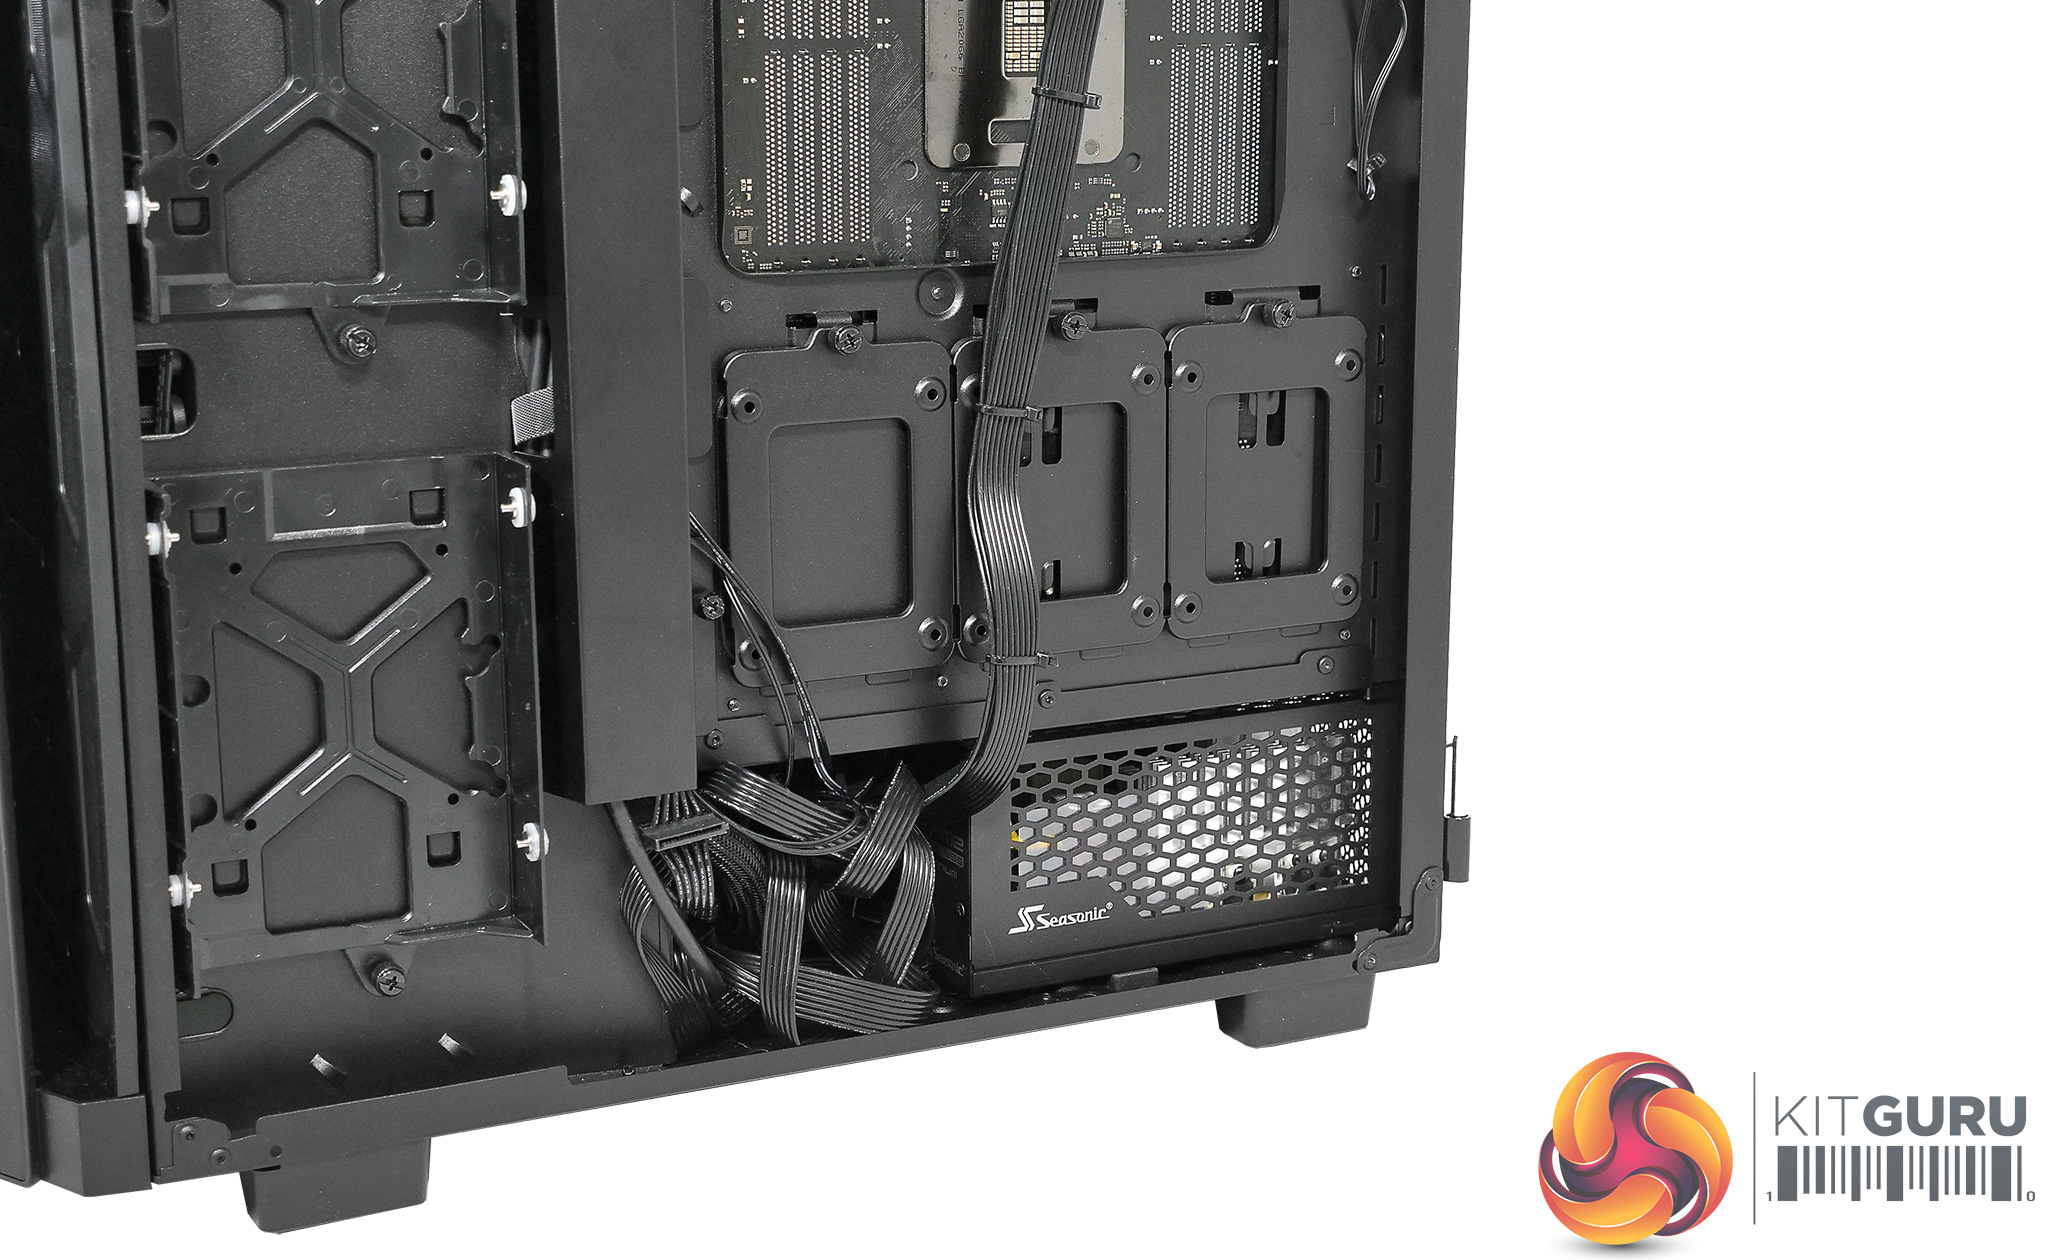 3 Channel Wiring Diagram Corsair Obsidian 500d Chassis Review Intended For Adults